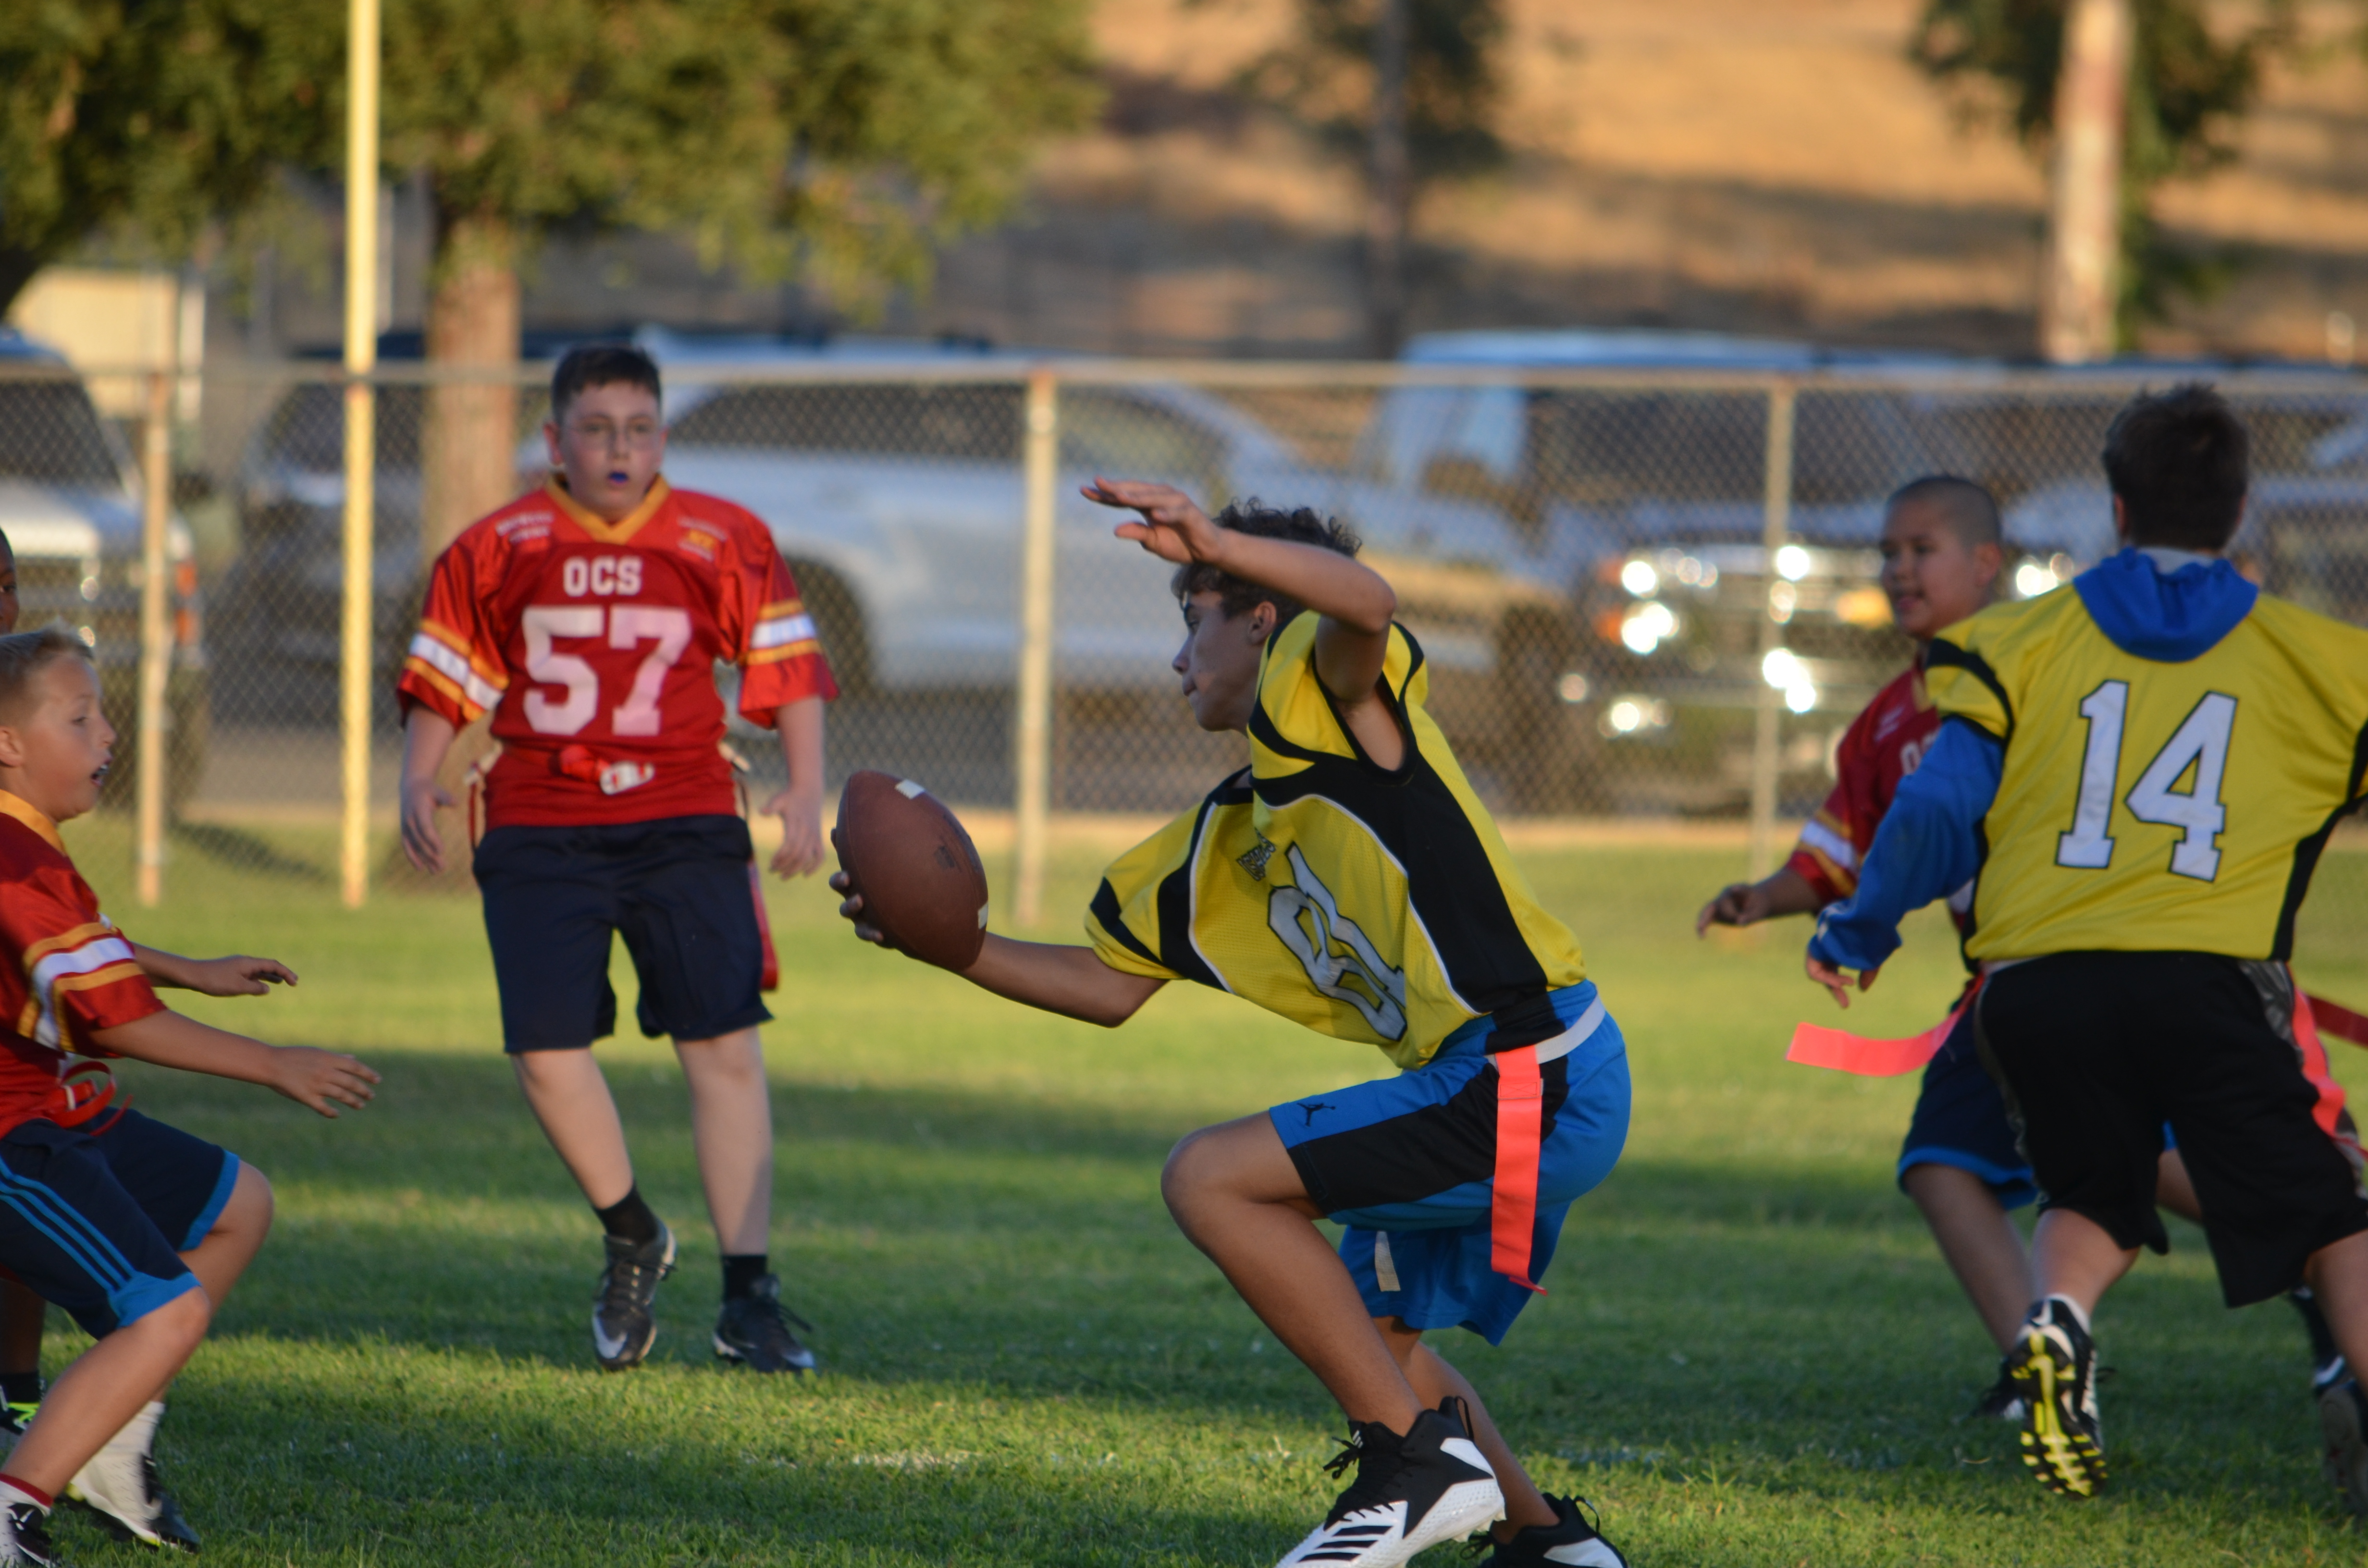 Great Moves on the flag football team